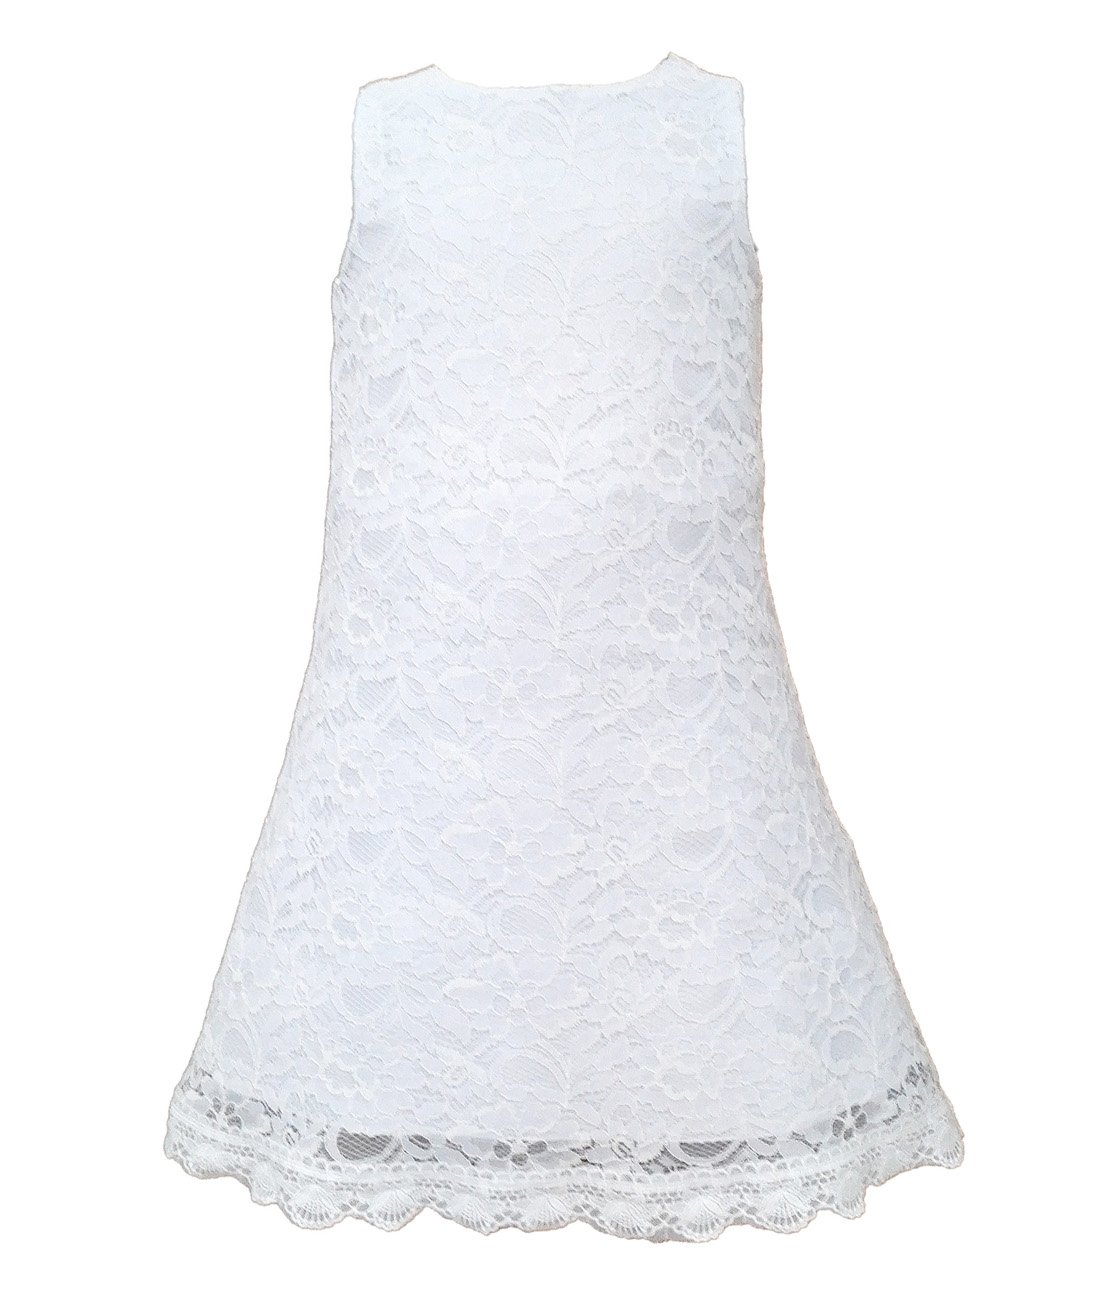 Funtrees Little Miss Lace Overlay A-Line Sleeveless Dress Size 4-5T White